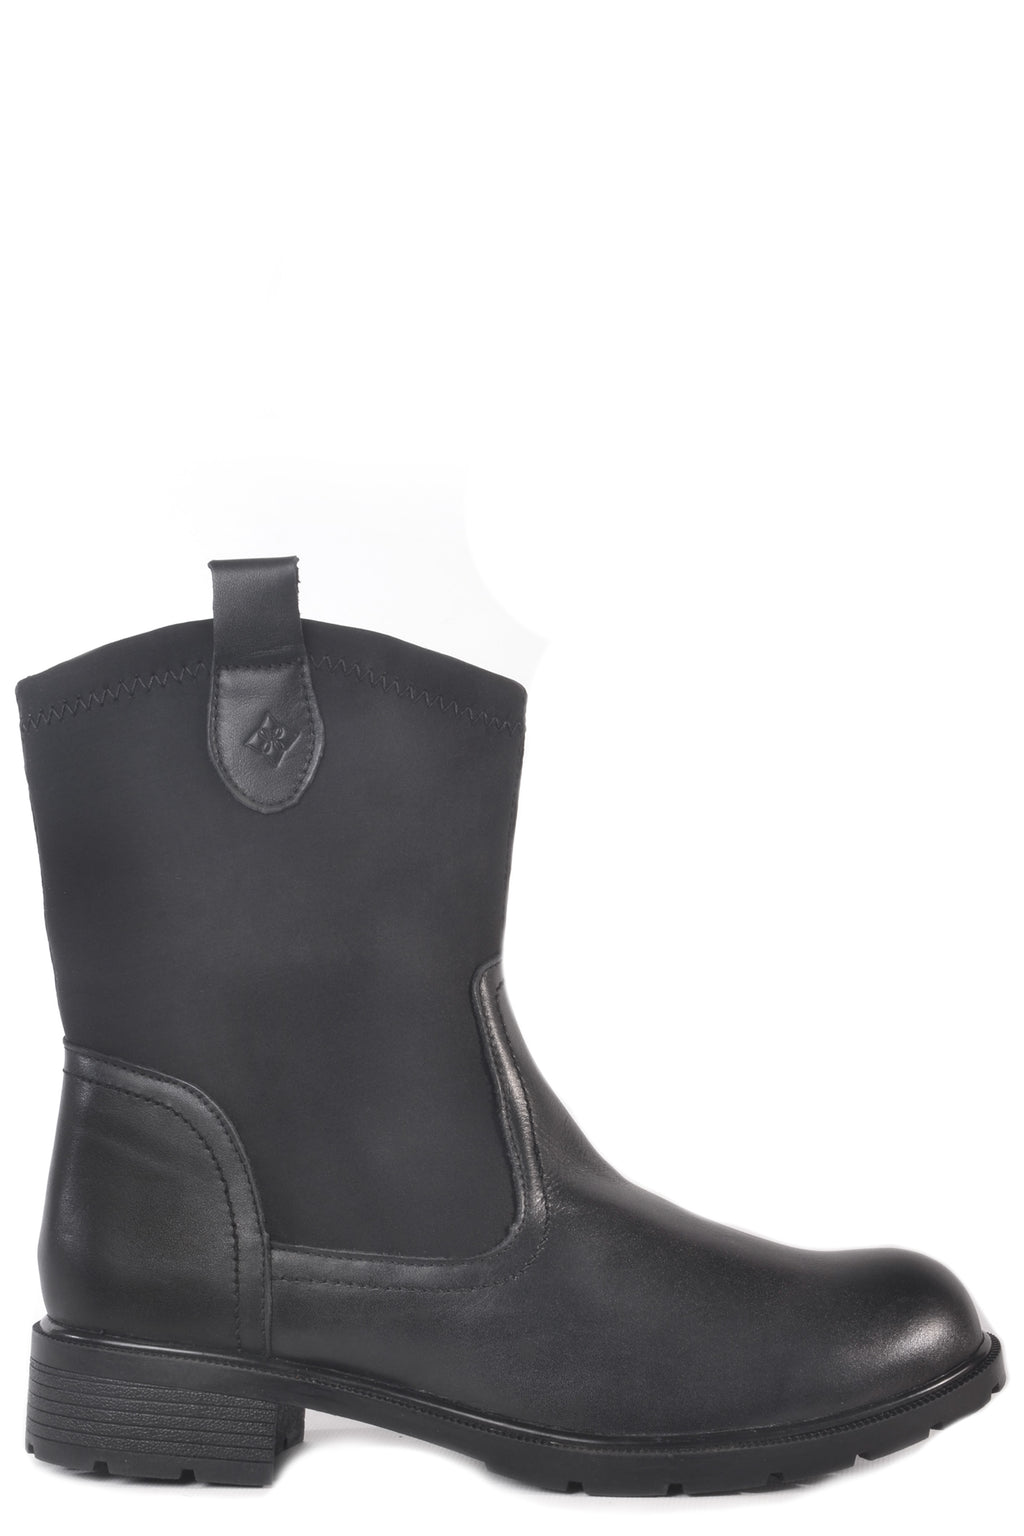 VIRGINIA BREATHABLE WATERPROOF NYLON BOOT